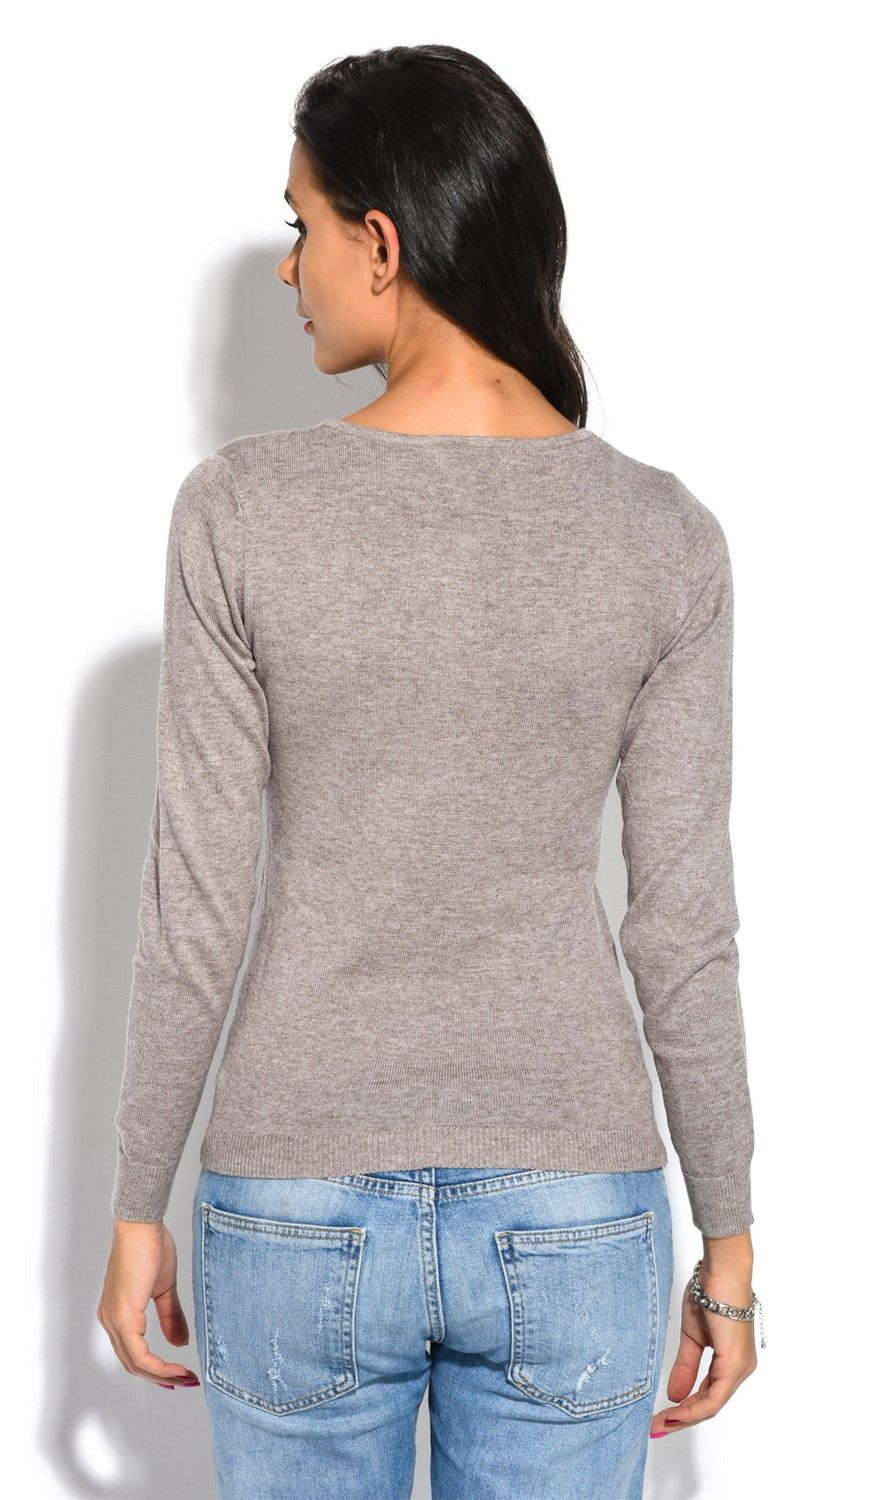 William De Faye Round Neck Keyhole with Button Sweater in Beige